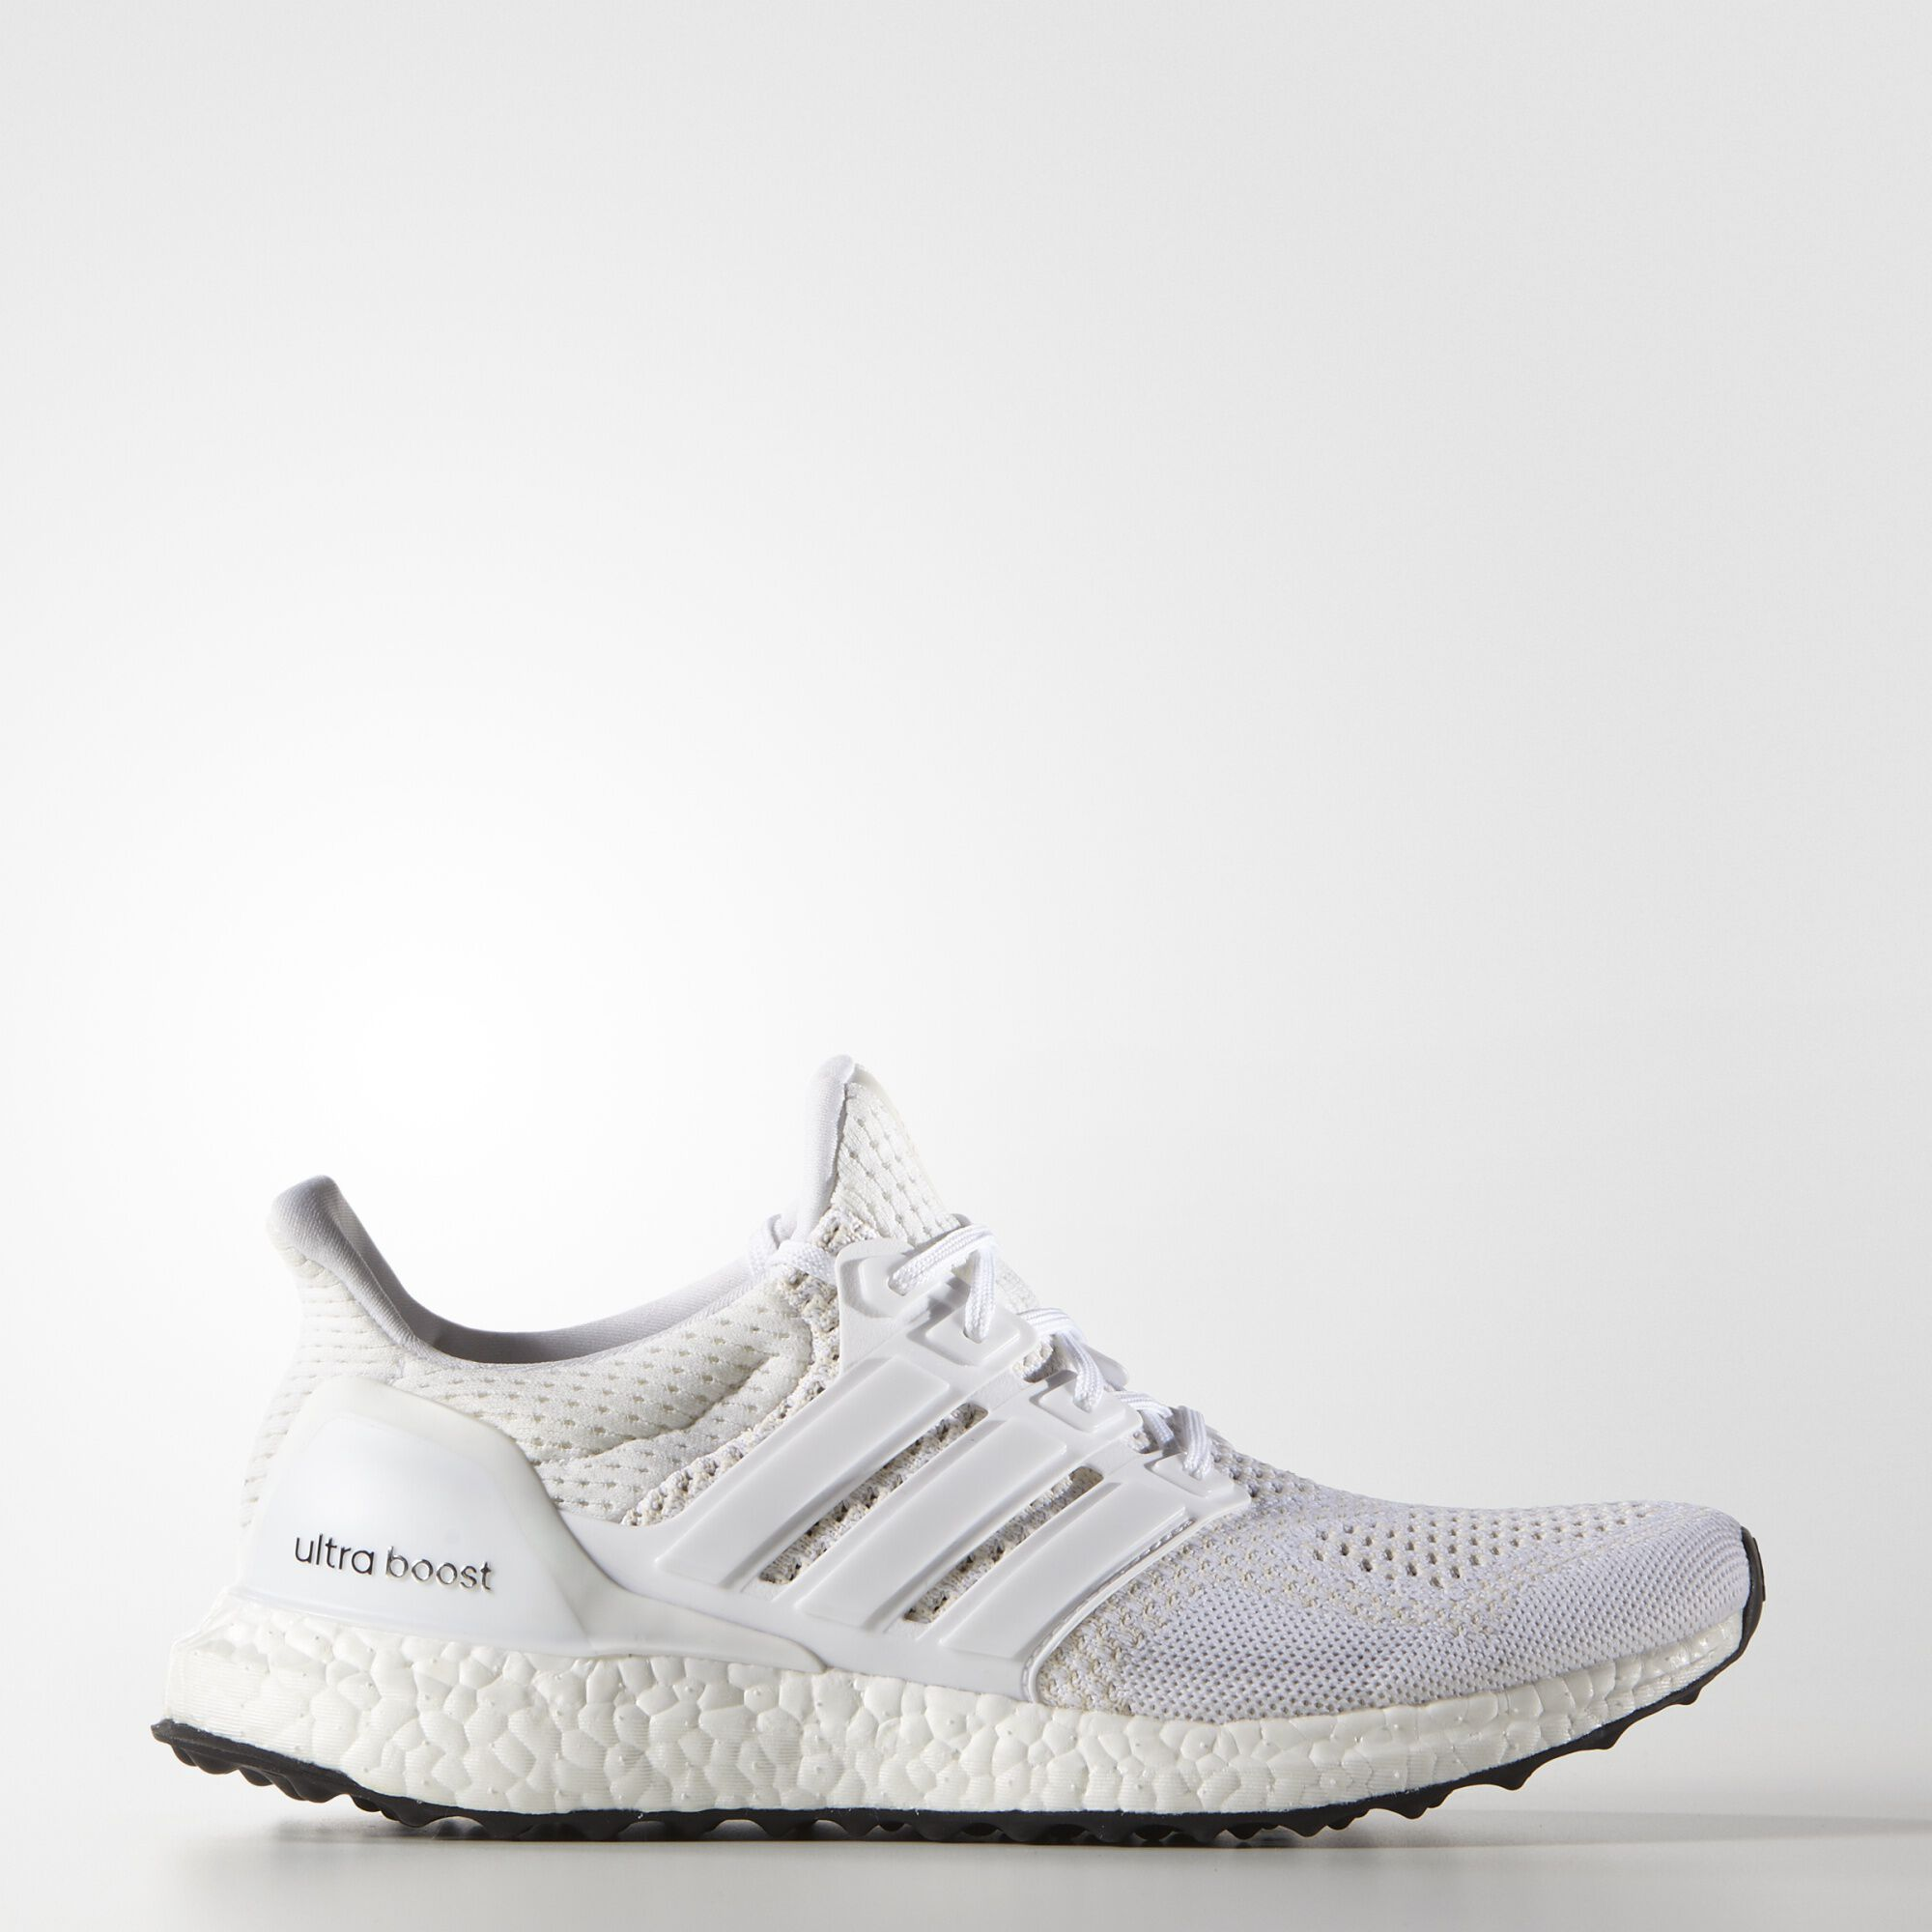 Adidas Ultra Boost White Amazon